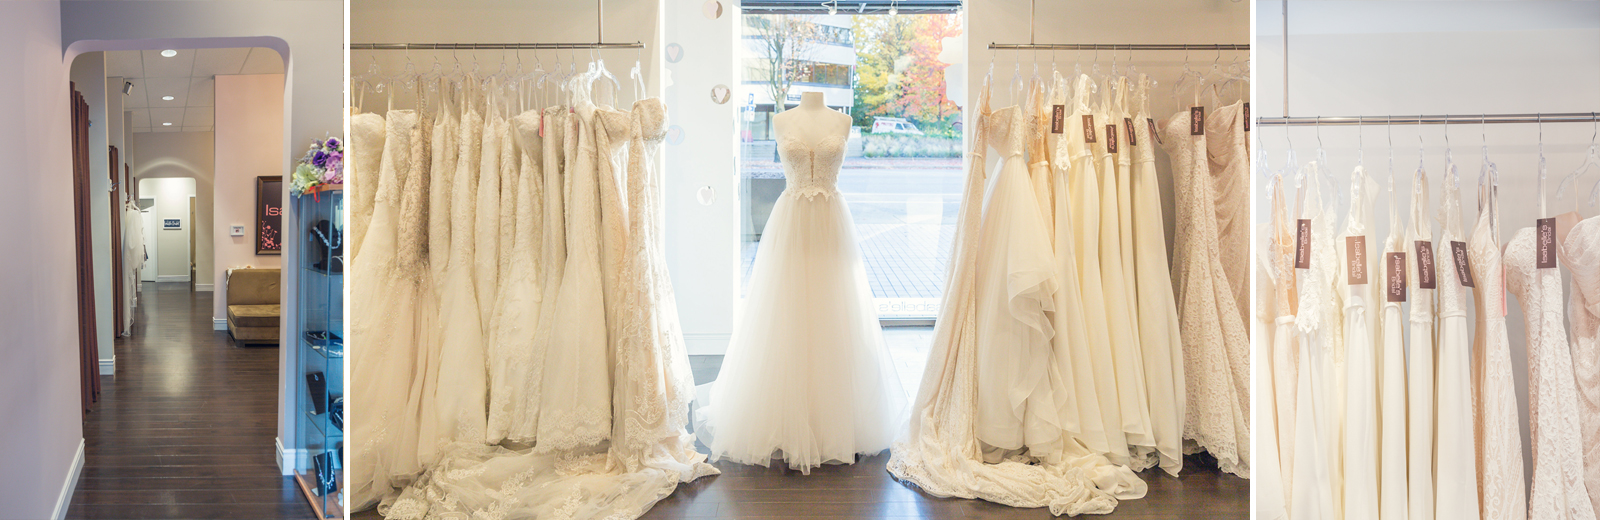 Isabelle's Bridal Wedding Dresses